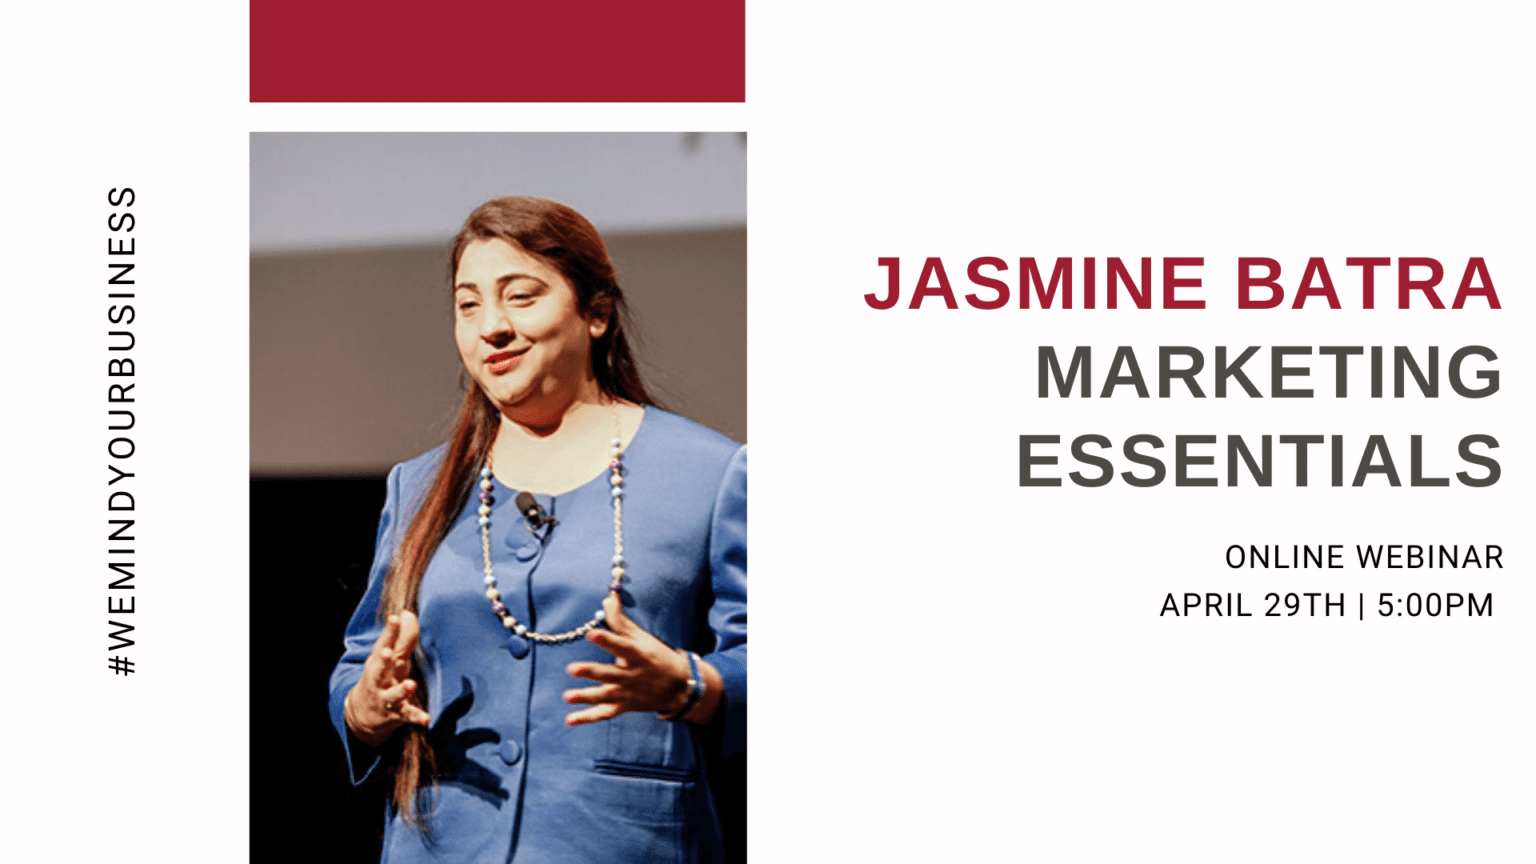 jasmine-batra-marketing-essentials